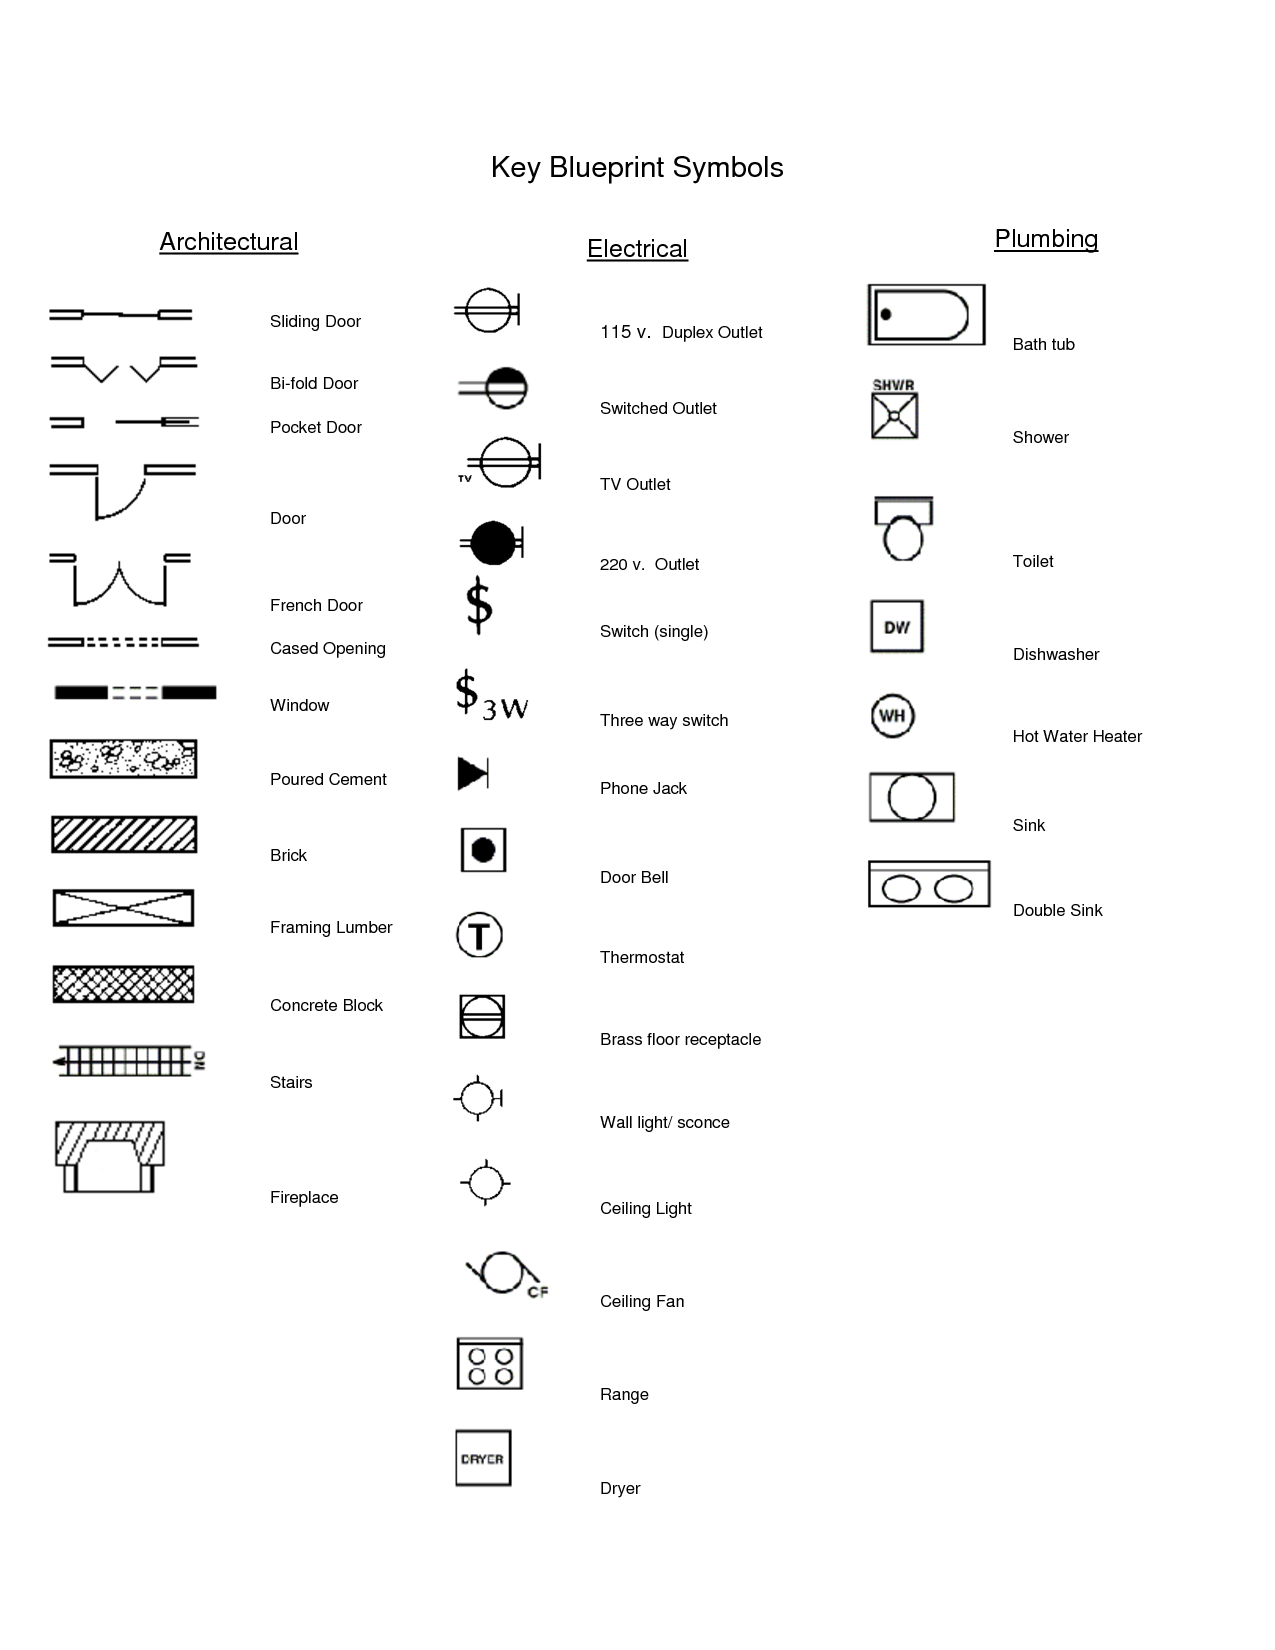 medium resolution of electrical outlet symbols blueprints brick pinned by www modlar com